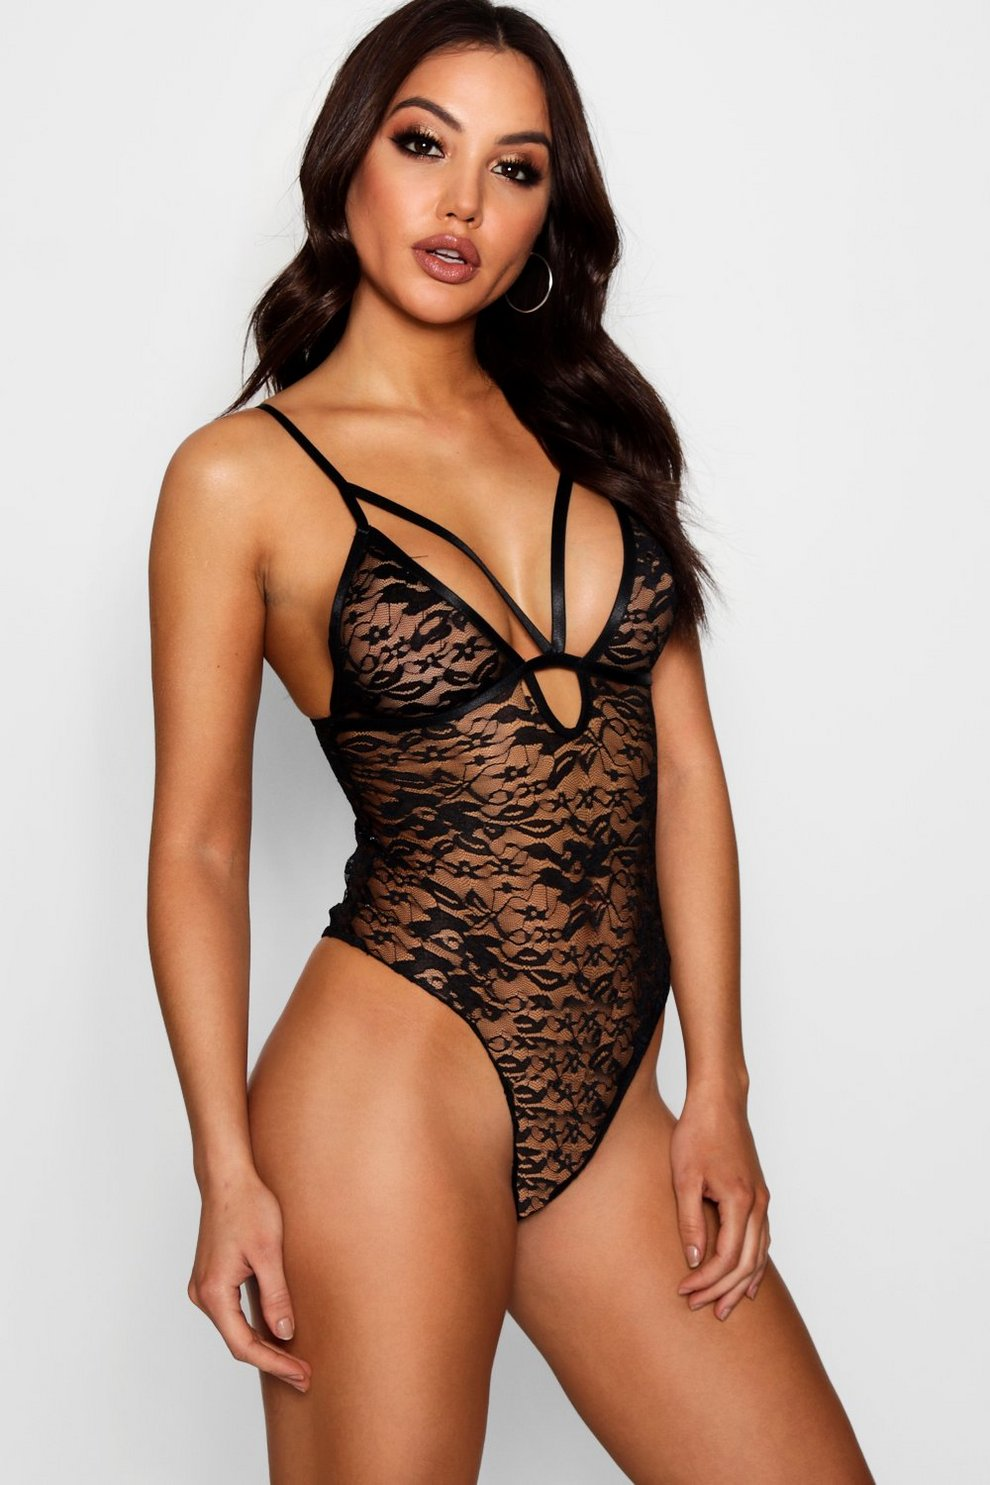 acfed135fa Womens Black Lace Caged Strappy Bodysuit